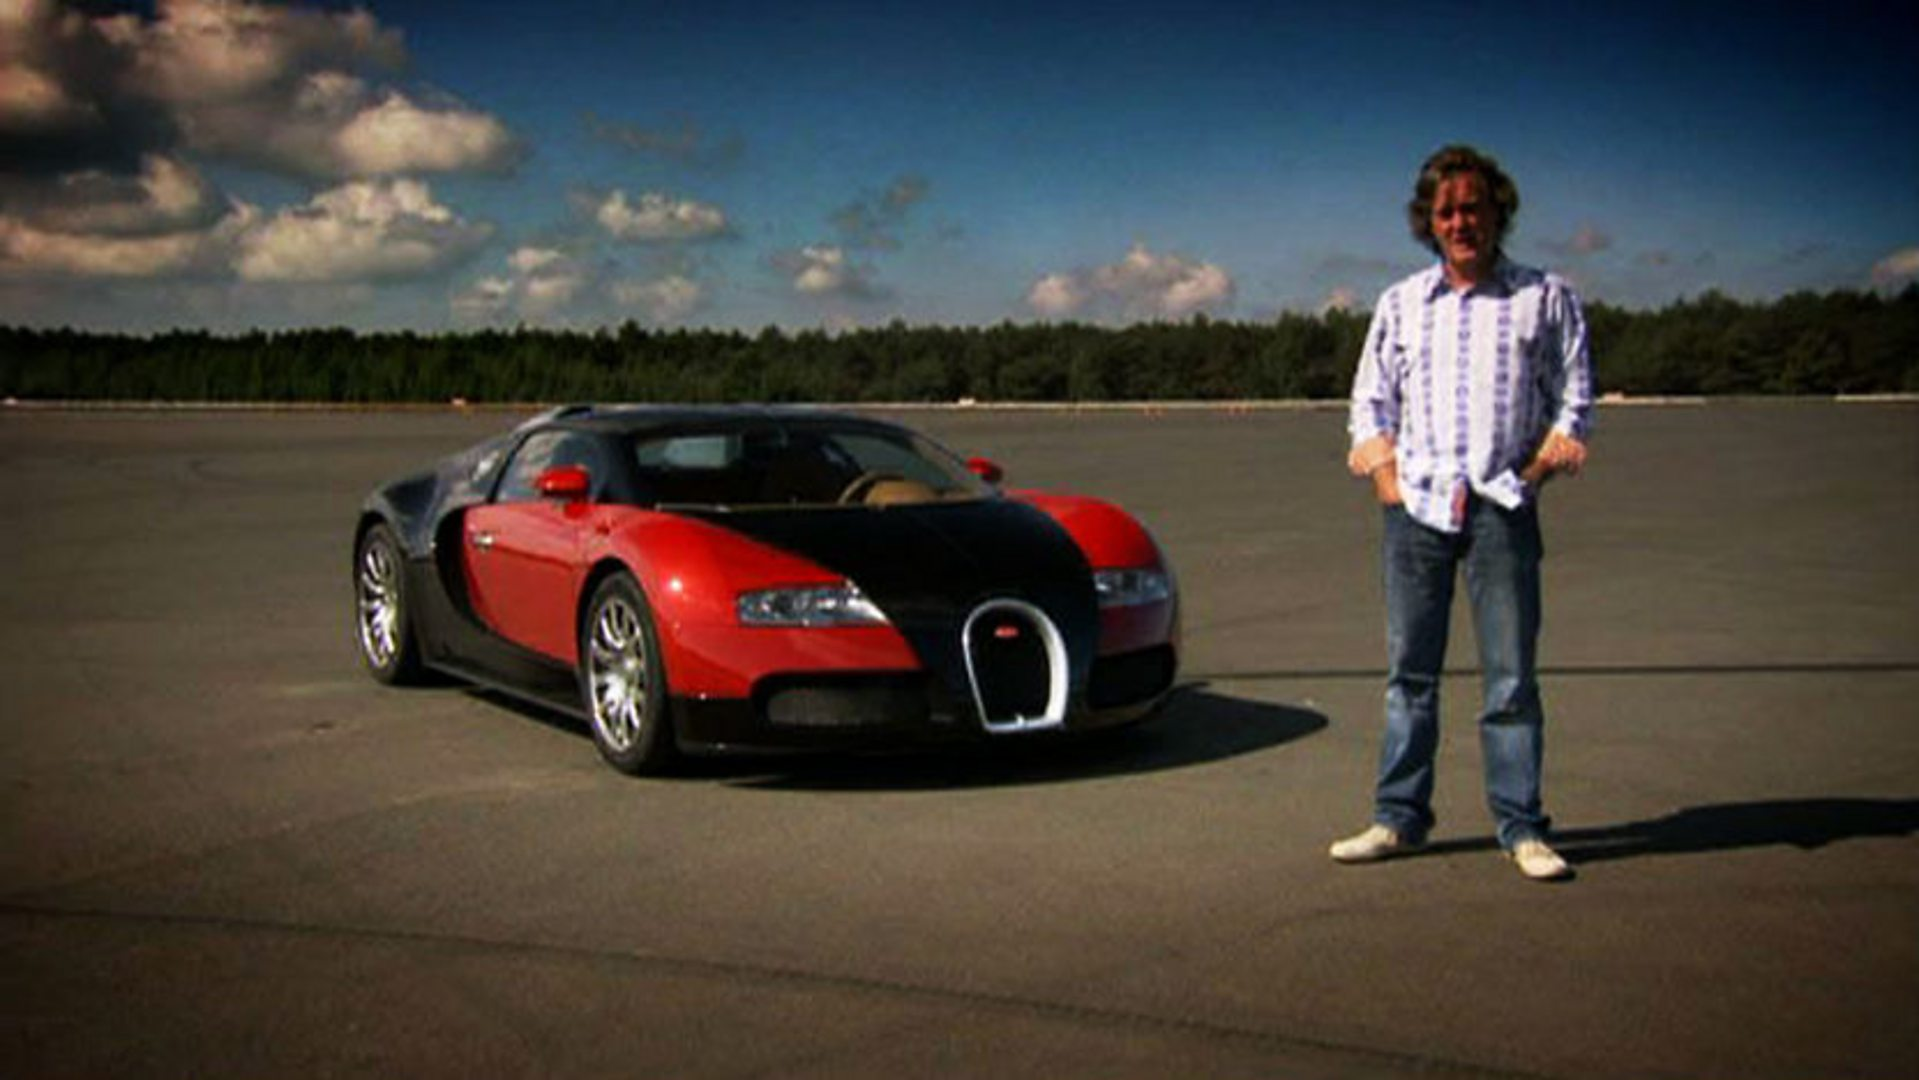 BBC Two - Top Gear, Series 15, Episode 5, Bugatti Veyron SS